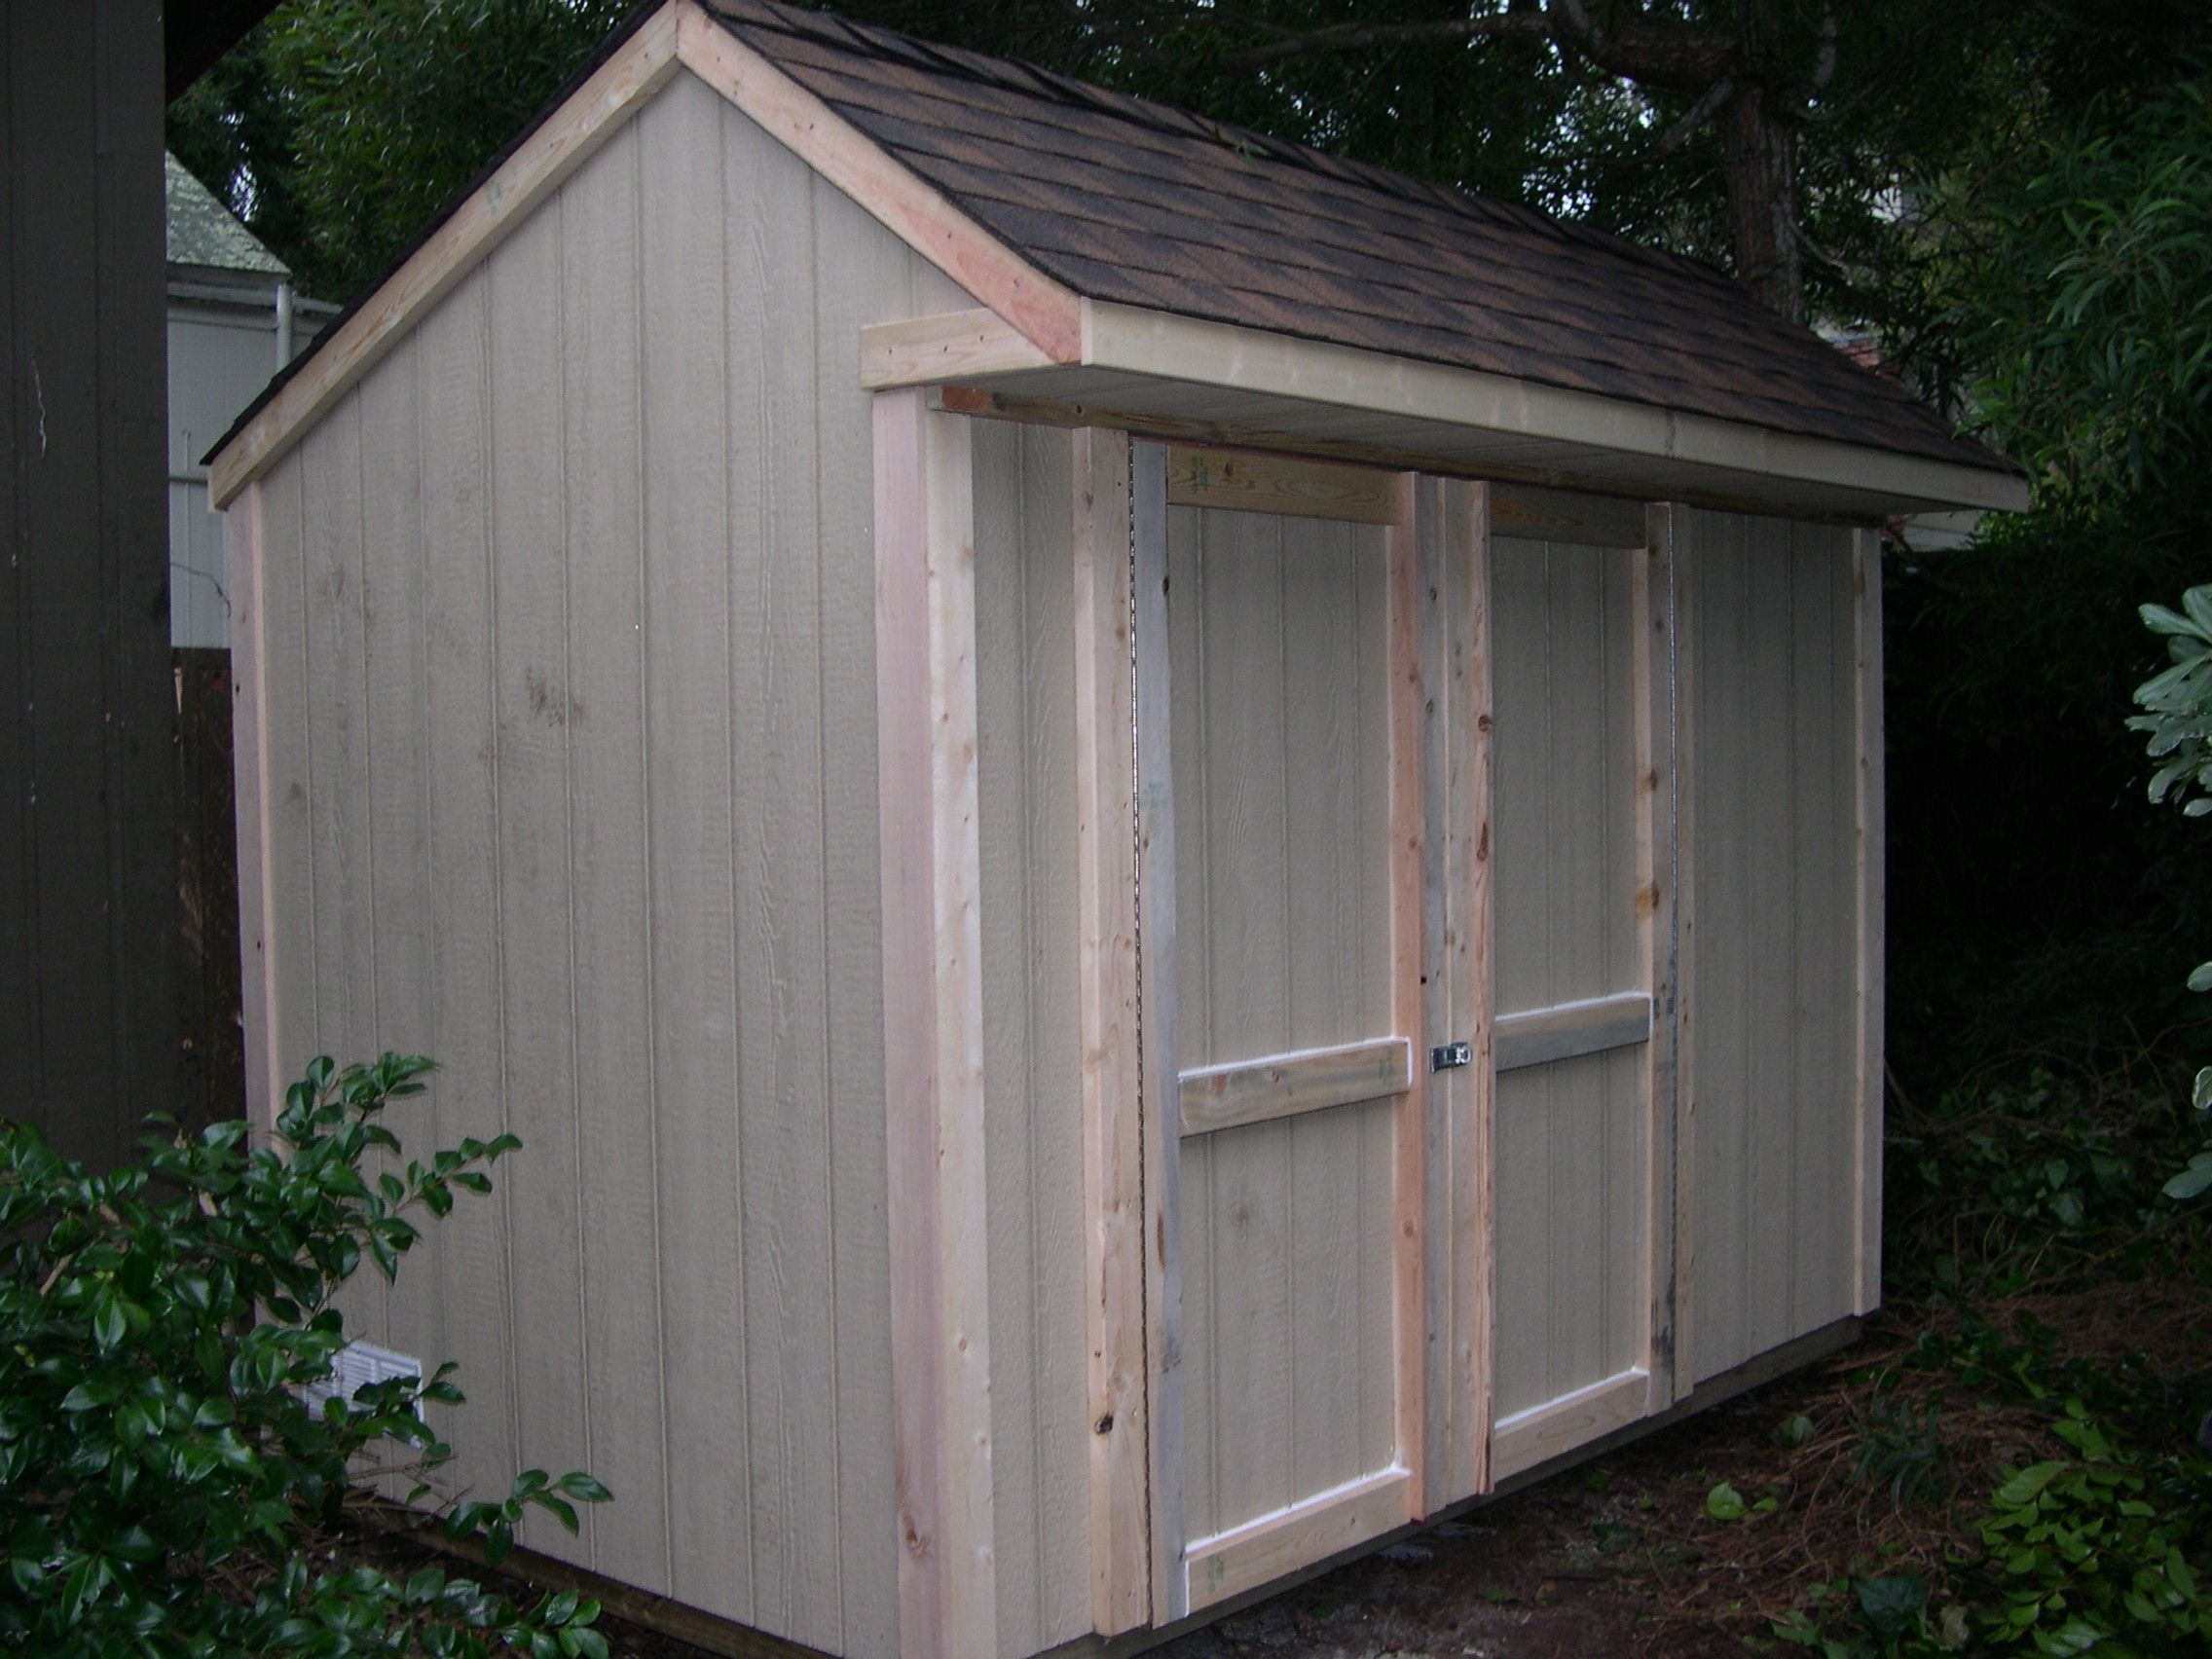 sample shed plans 22 6x10 saltbox roof small shed download - Garden Sheds 6 X 10